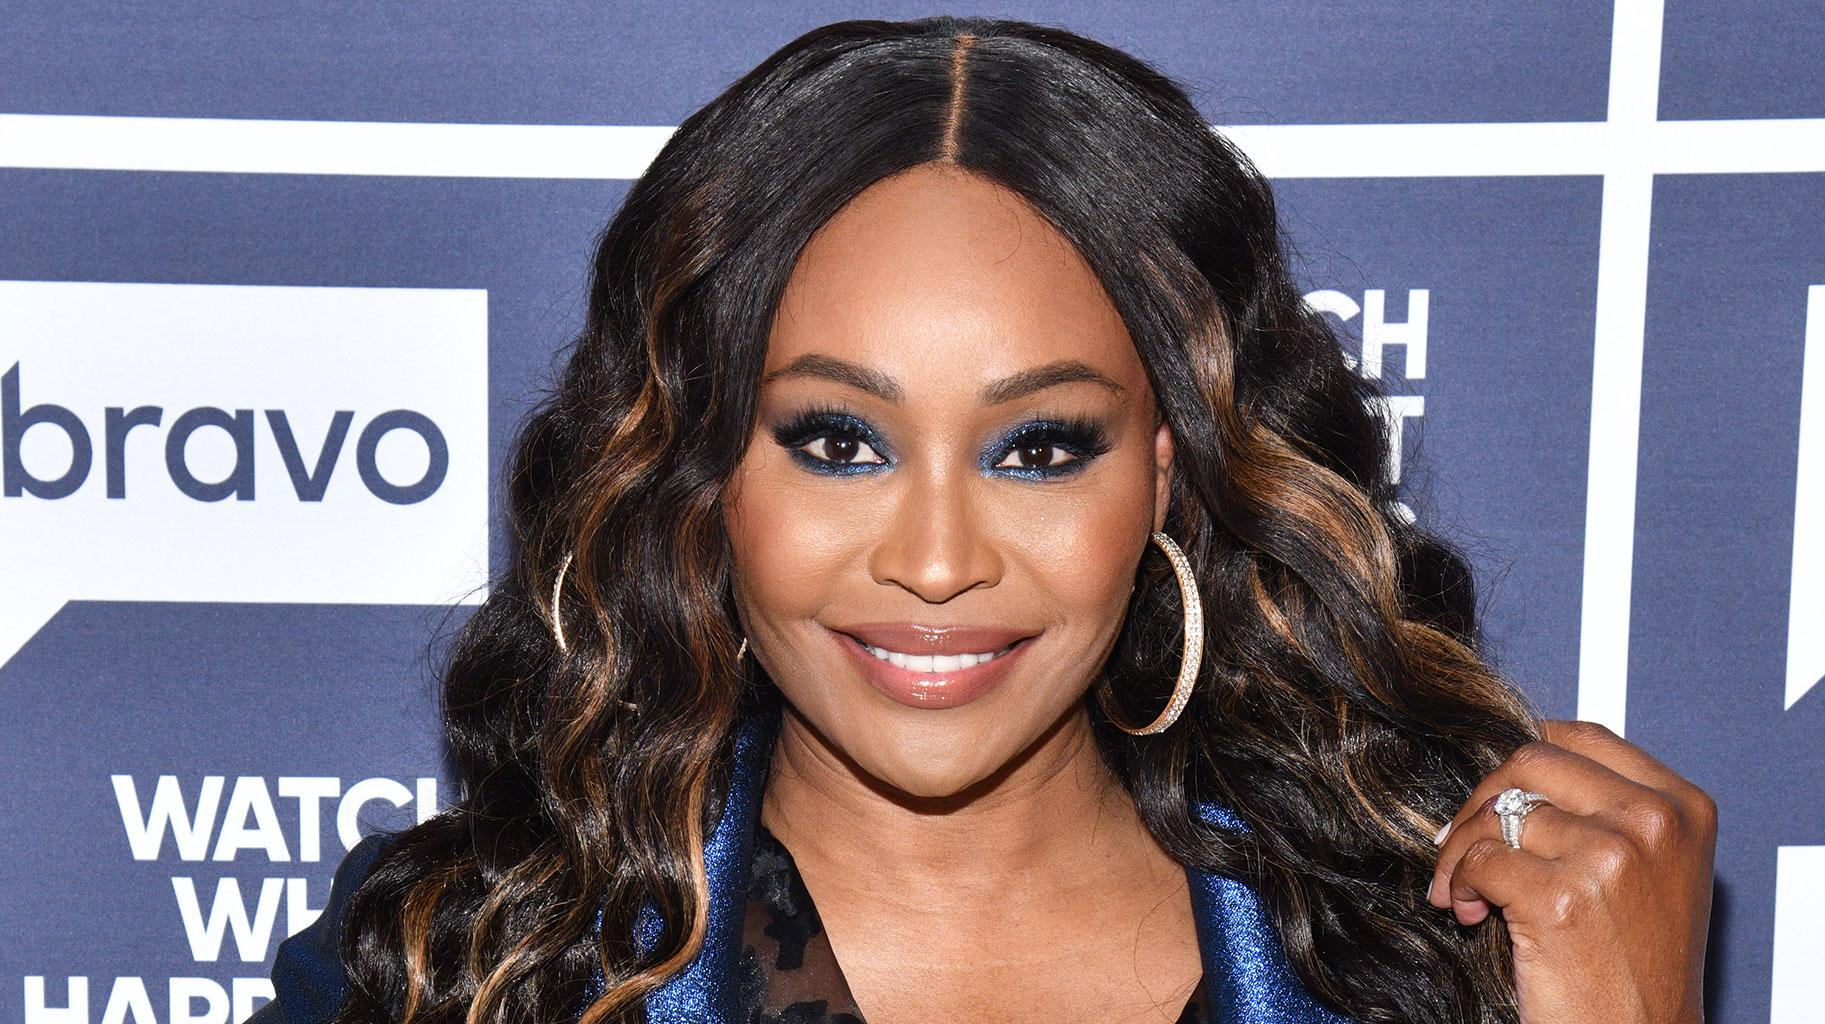 Cynthia Bailey Tells Her Fans To Keep Fighting The Good Fight